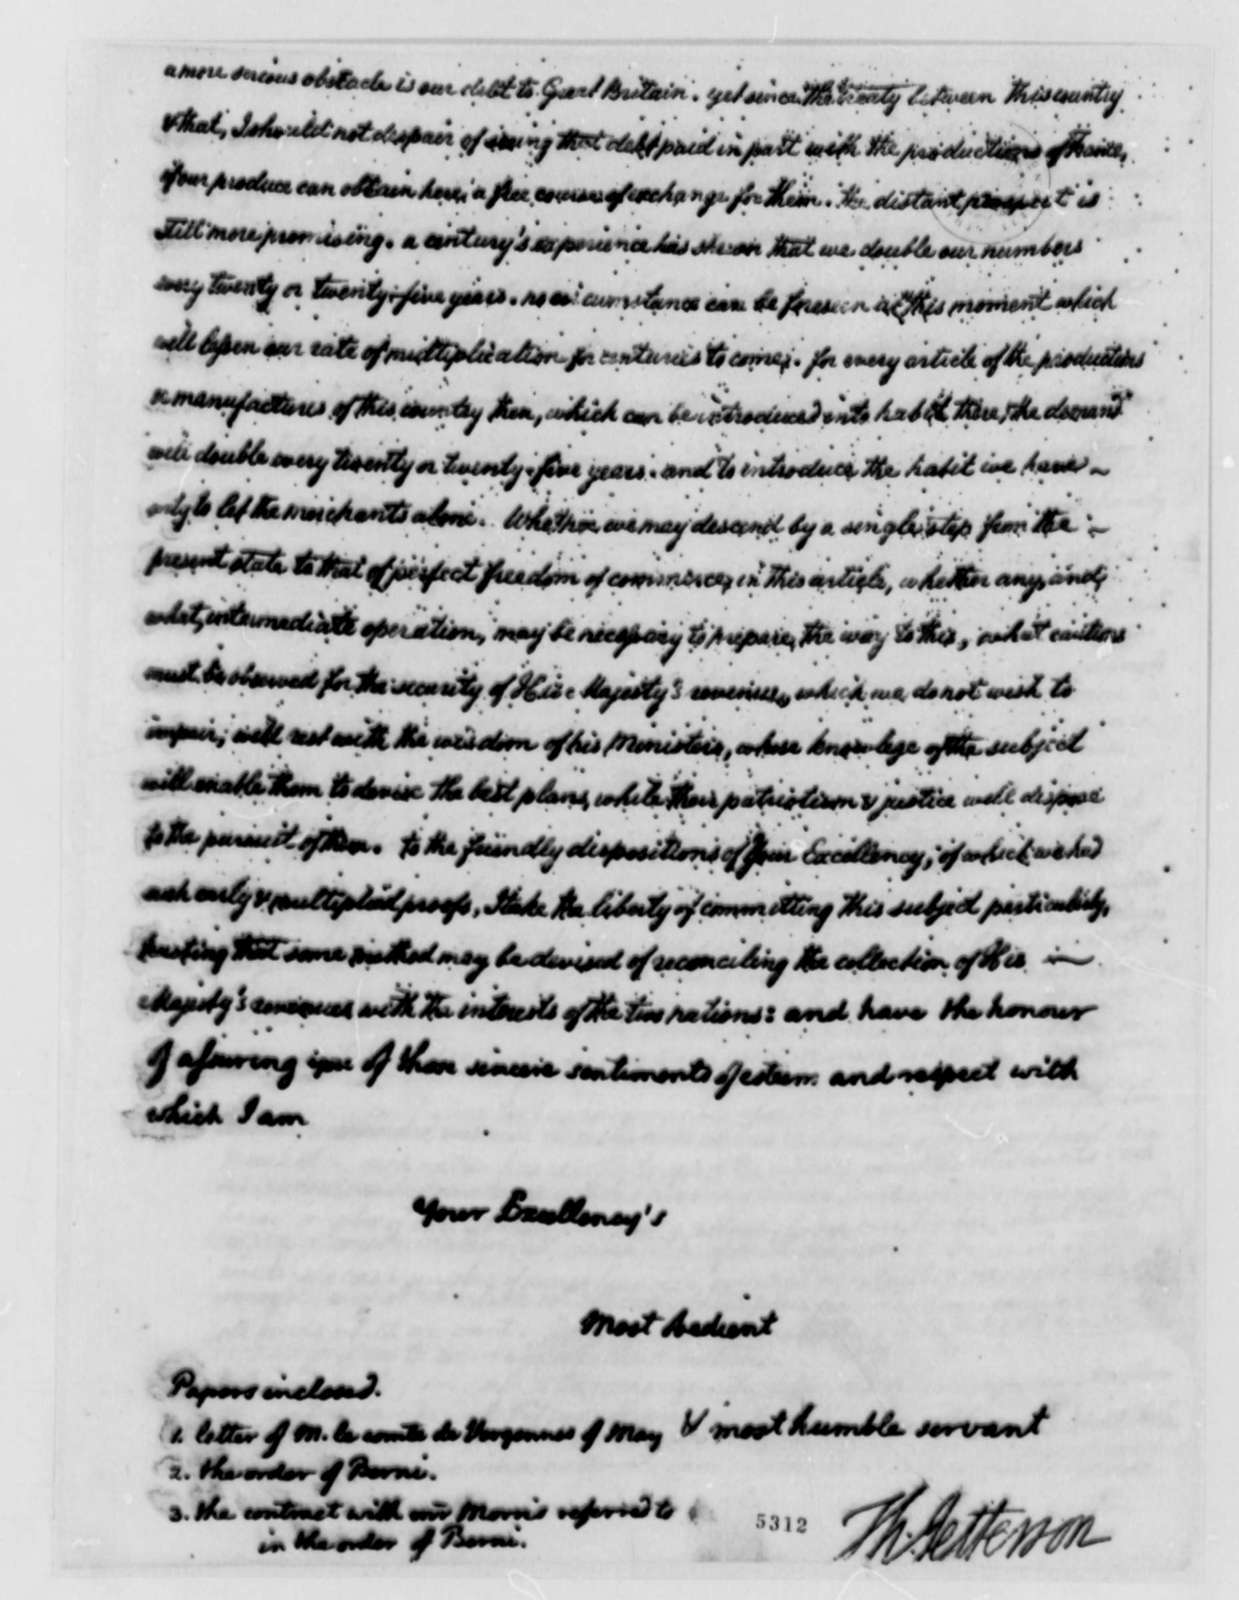 Thomas Jefferson to Armand-Marc, Comte de Montmorin-Saint-Herem, July 23, 1787, Tobacco Trade; Copy in English and Translation in French